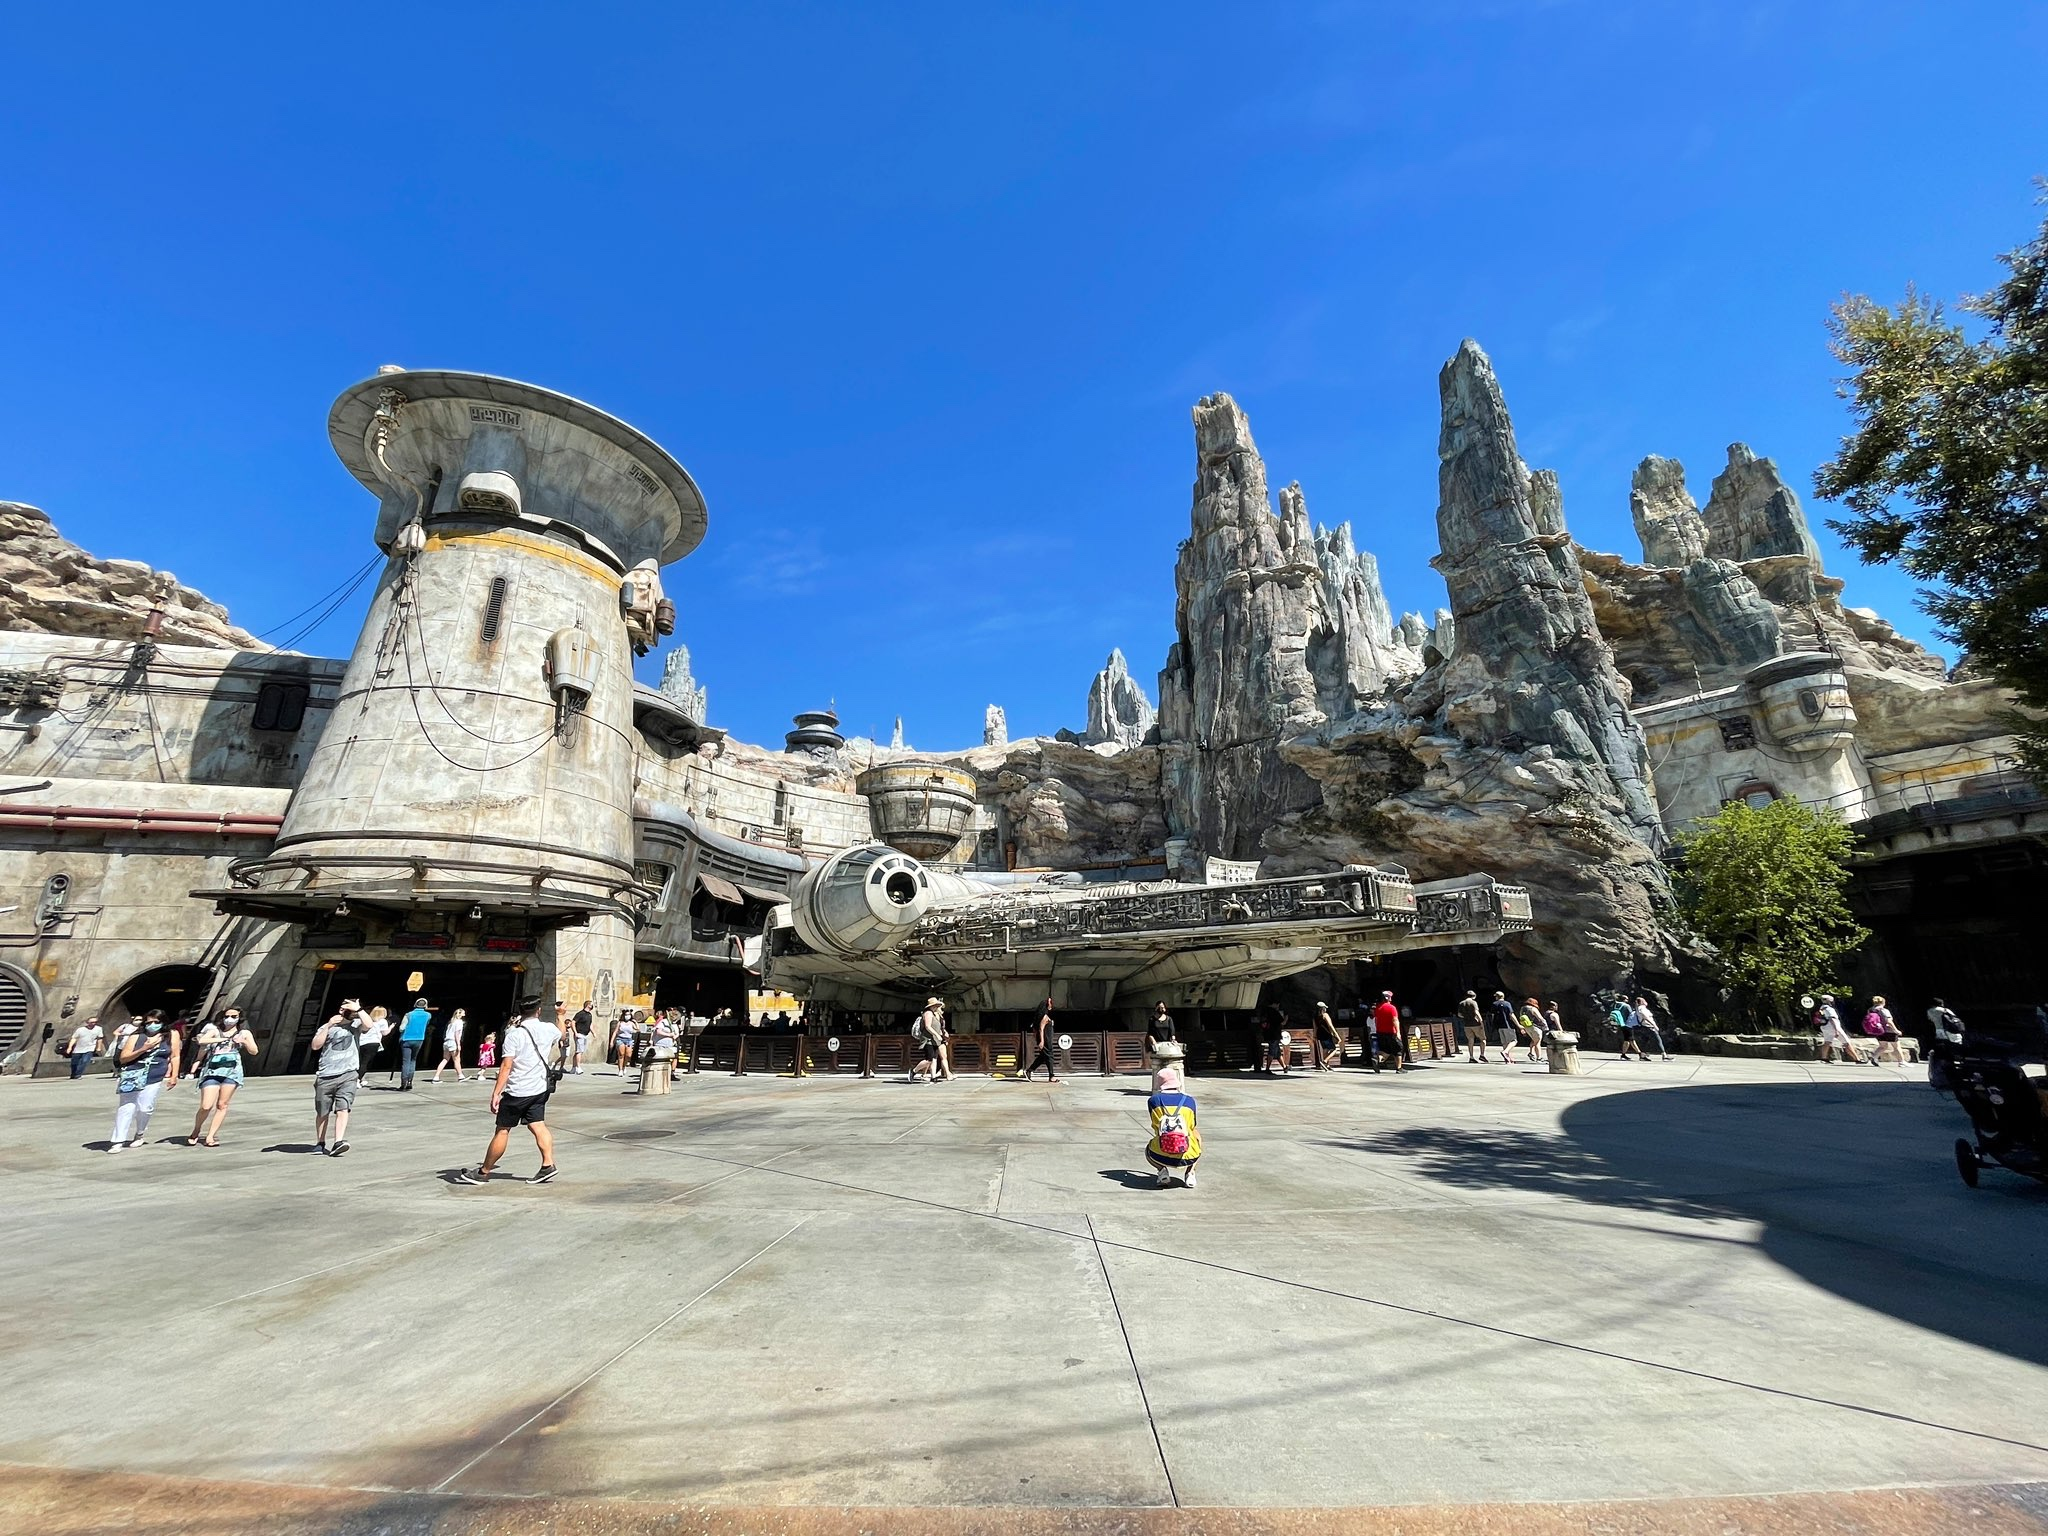 Disneyland Castle park in California reopens after 412 days